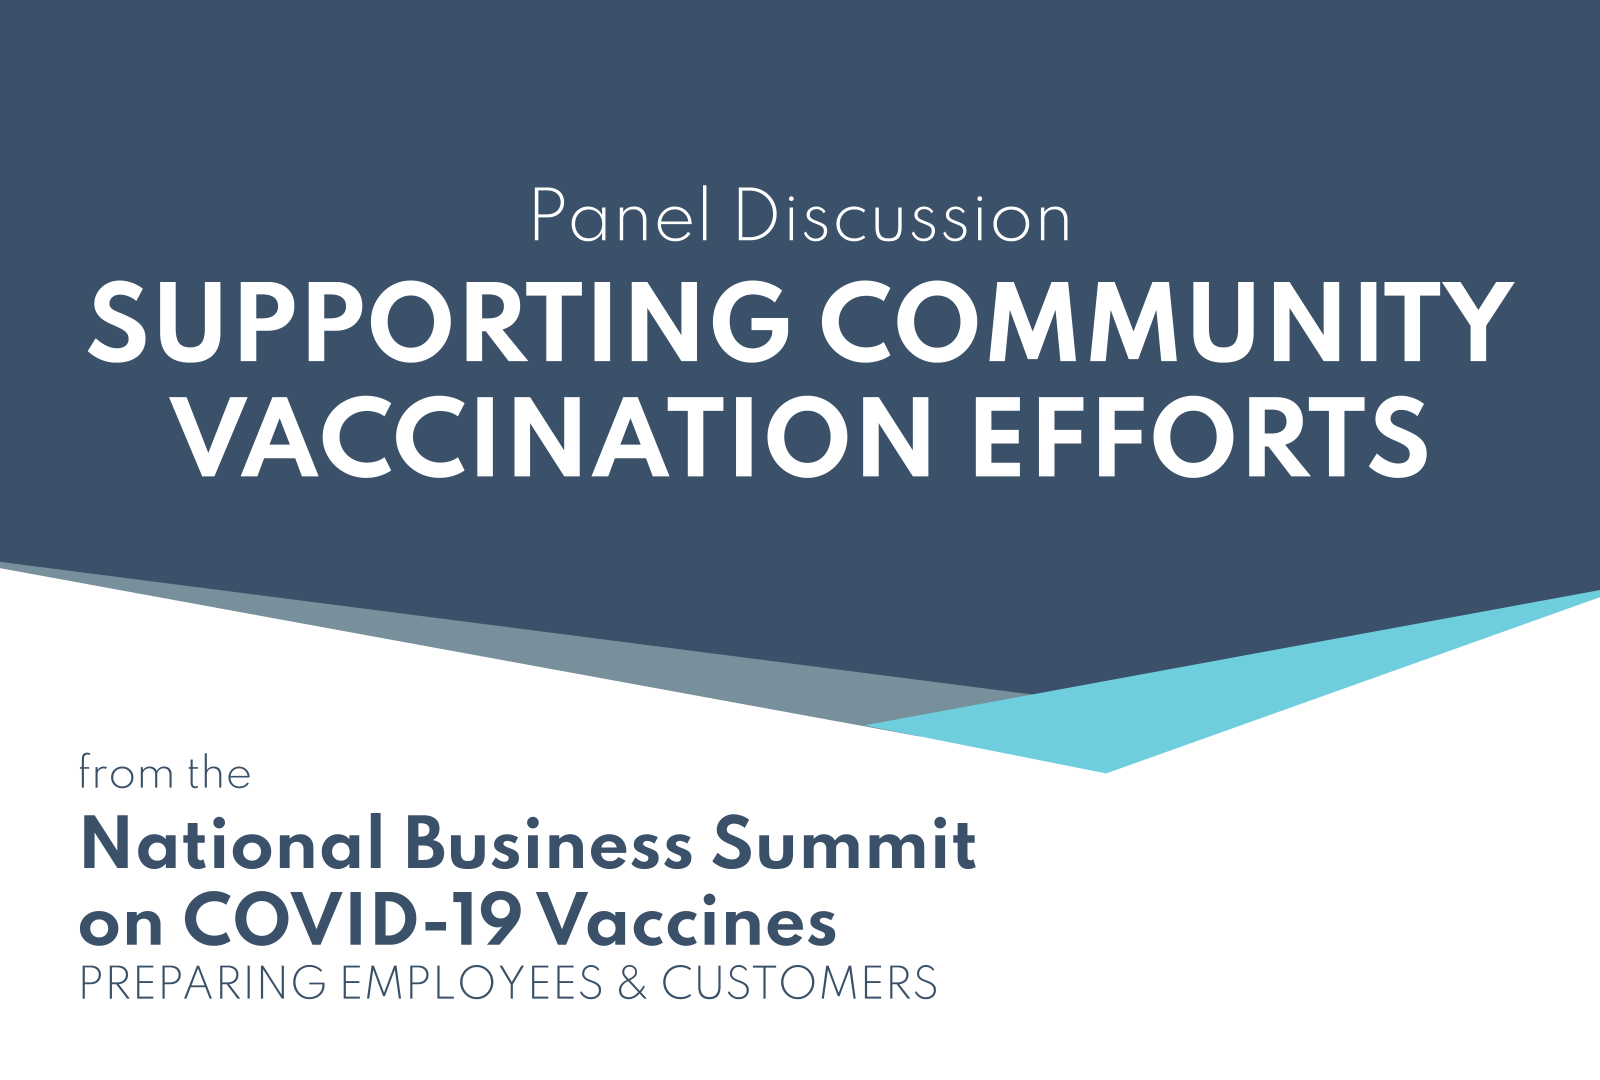 Supporting Community Vaccination Efforts